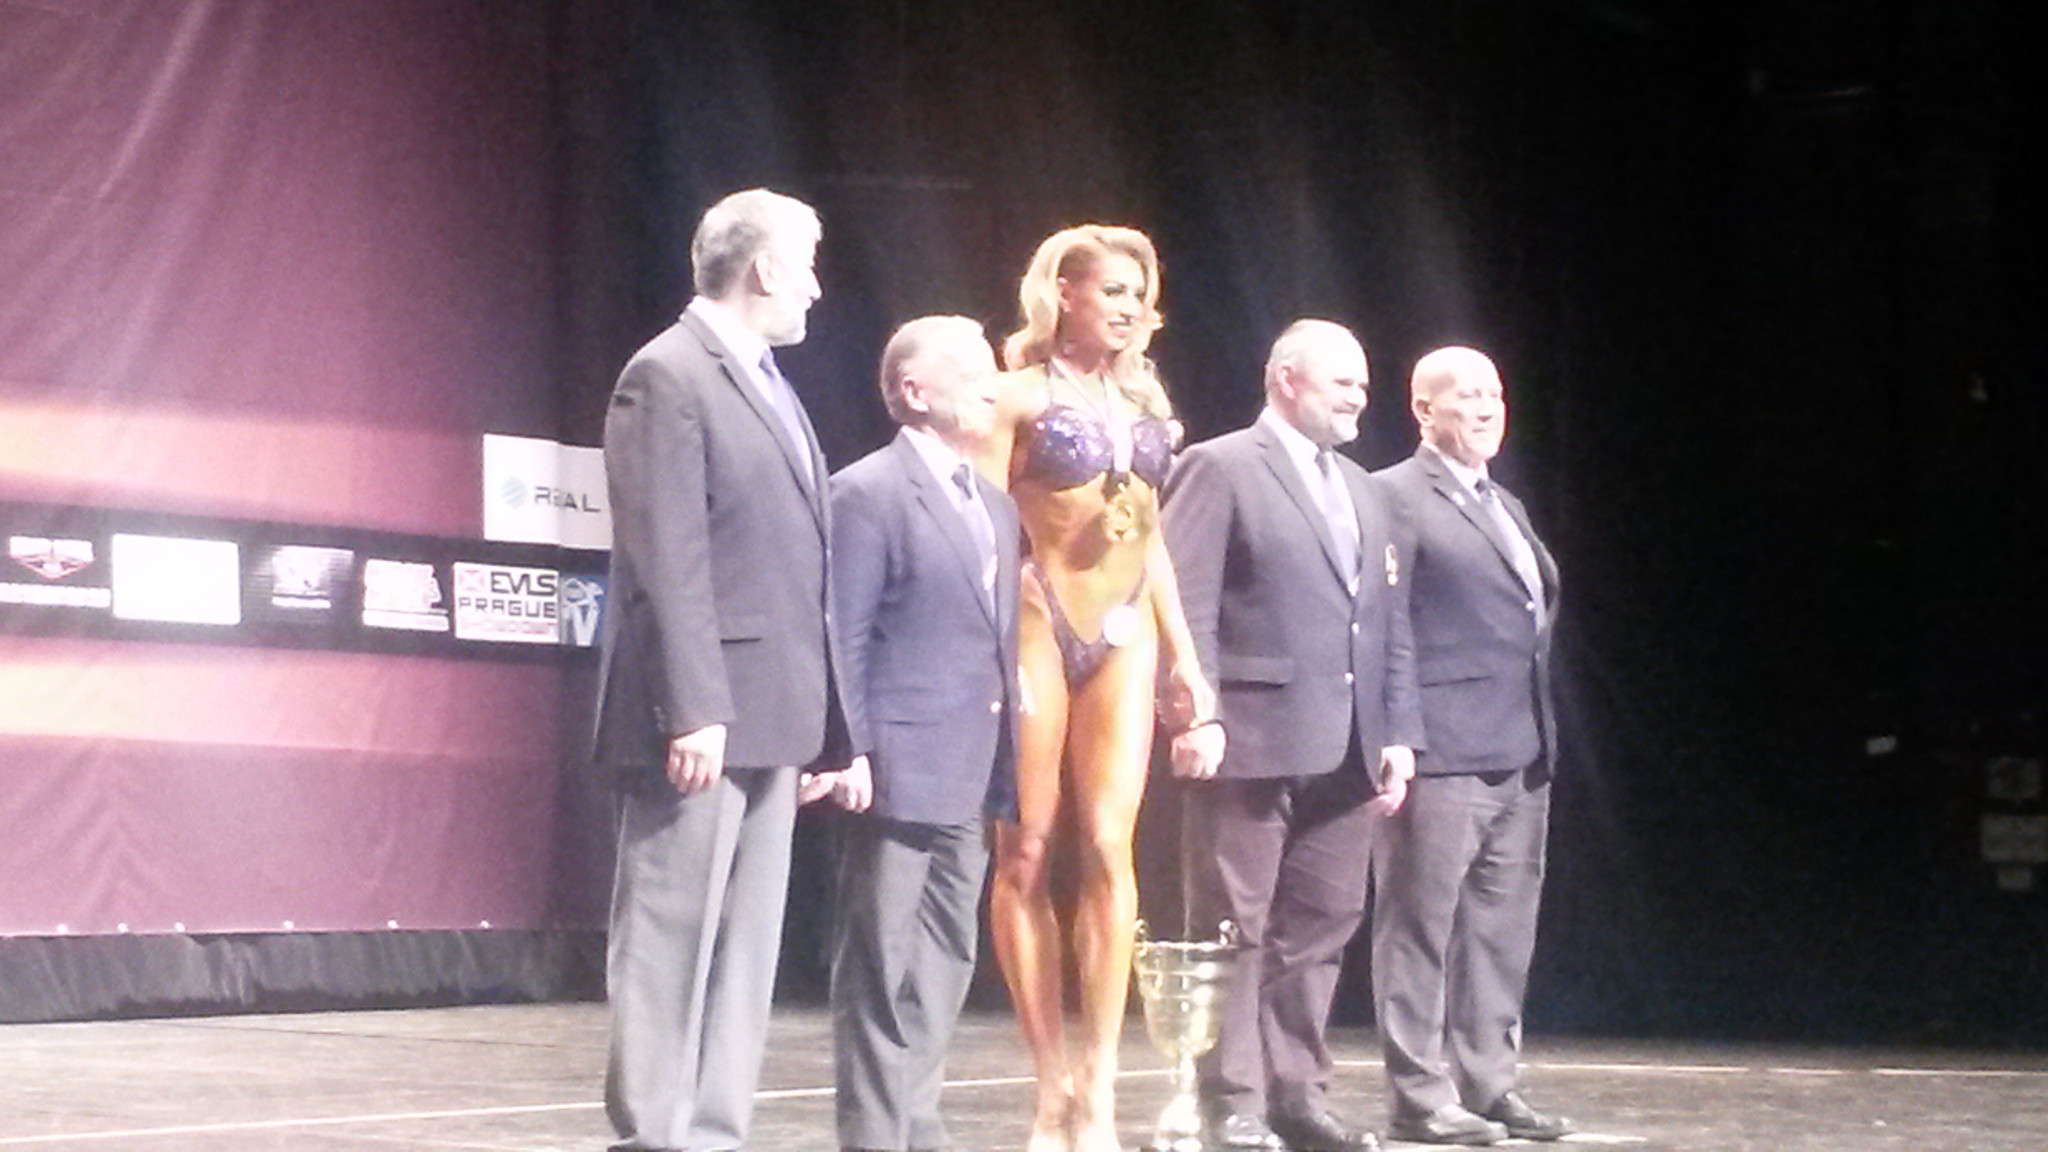 Lugovskikh cashes in Casino winnings as she tops IFBB Bikini-Fitness World Rankings